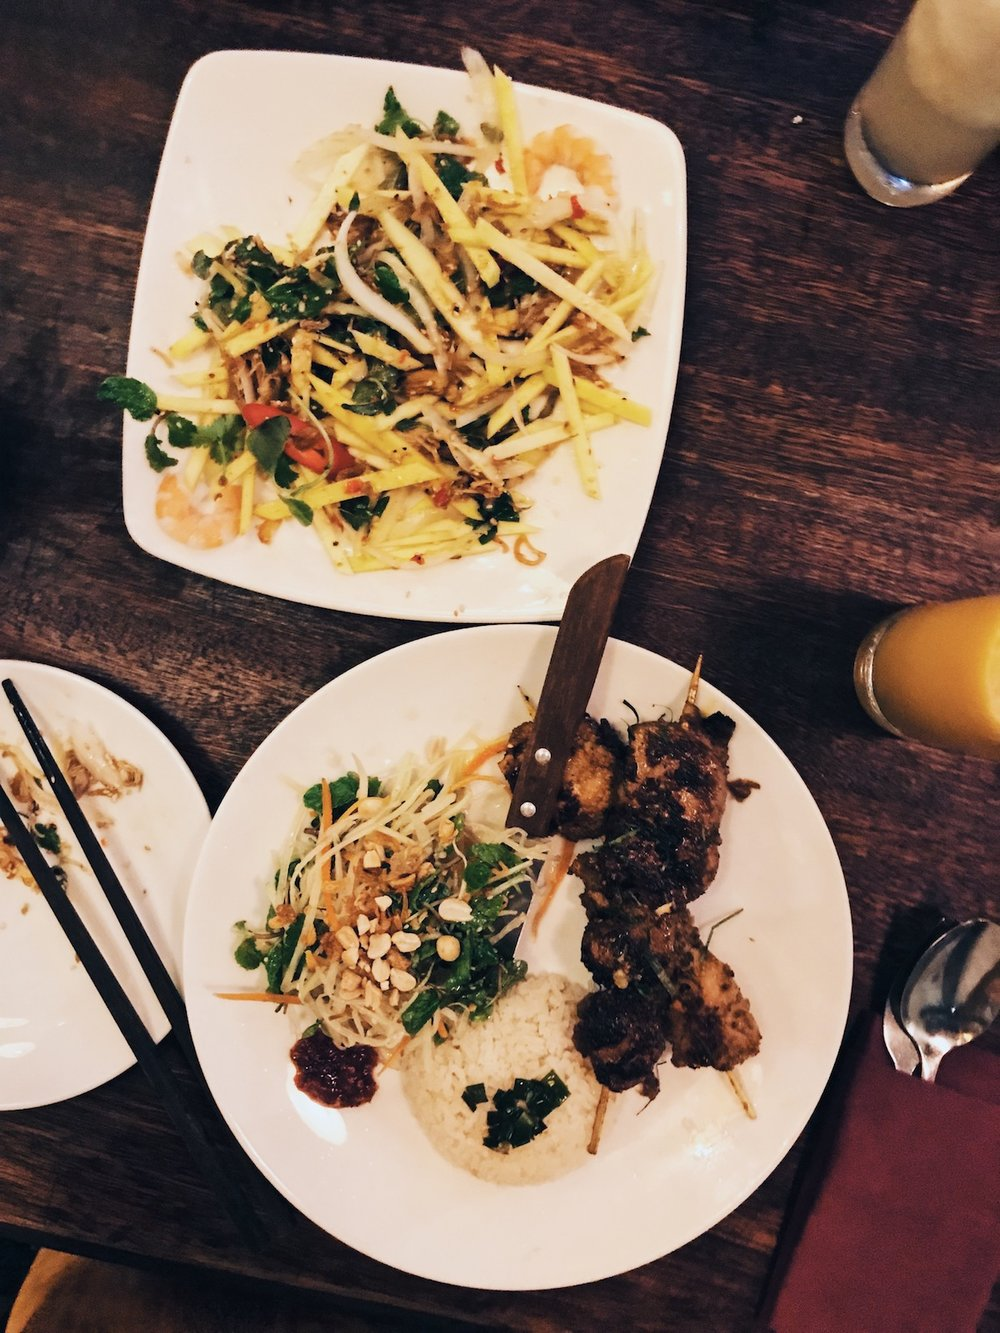 Morning Glory Restaurant, Best of Food + Coffee in Da Nang + Hoi An, Vietnam | Ruby Josephine